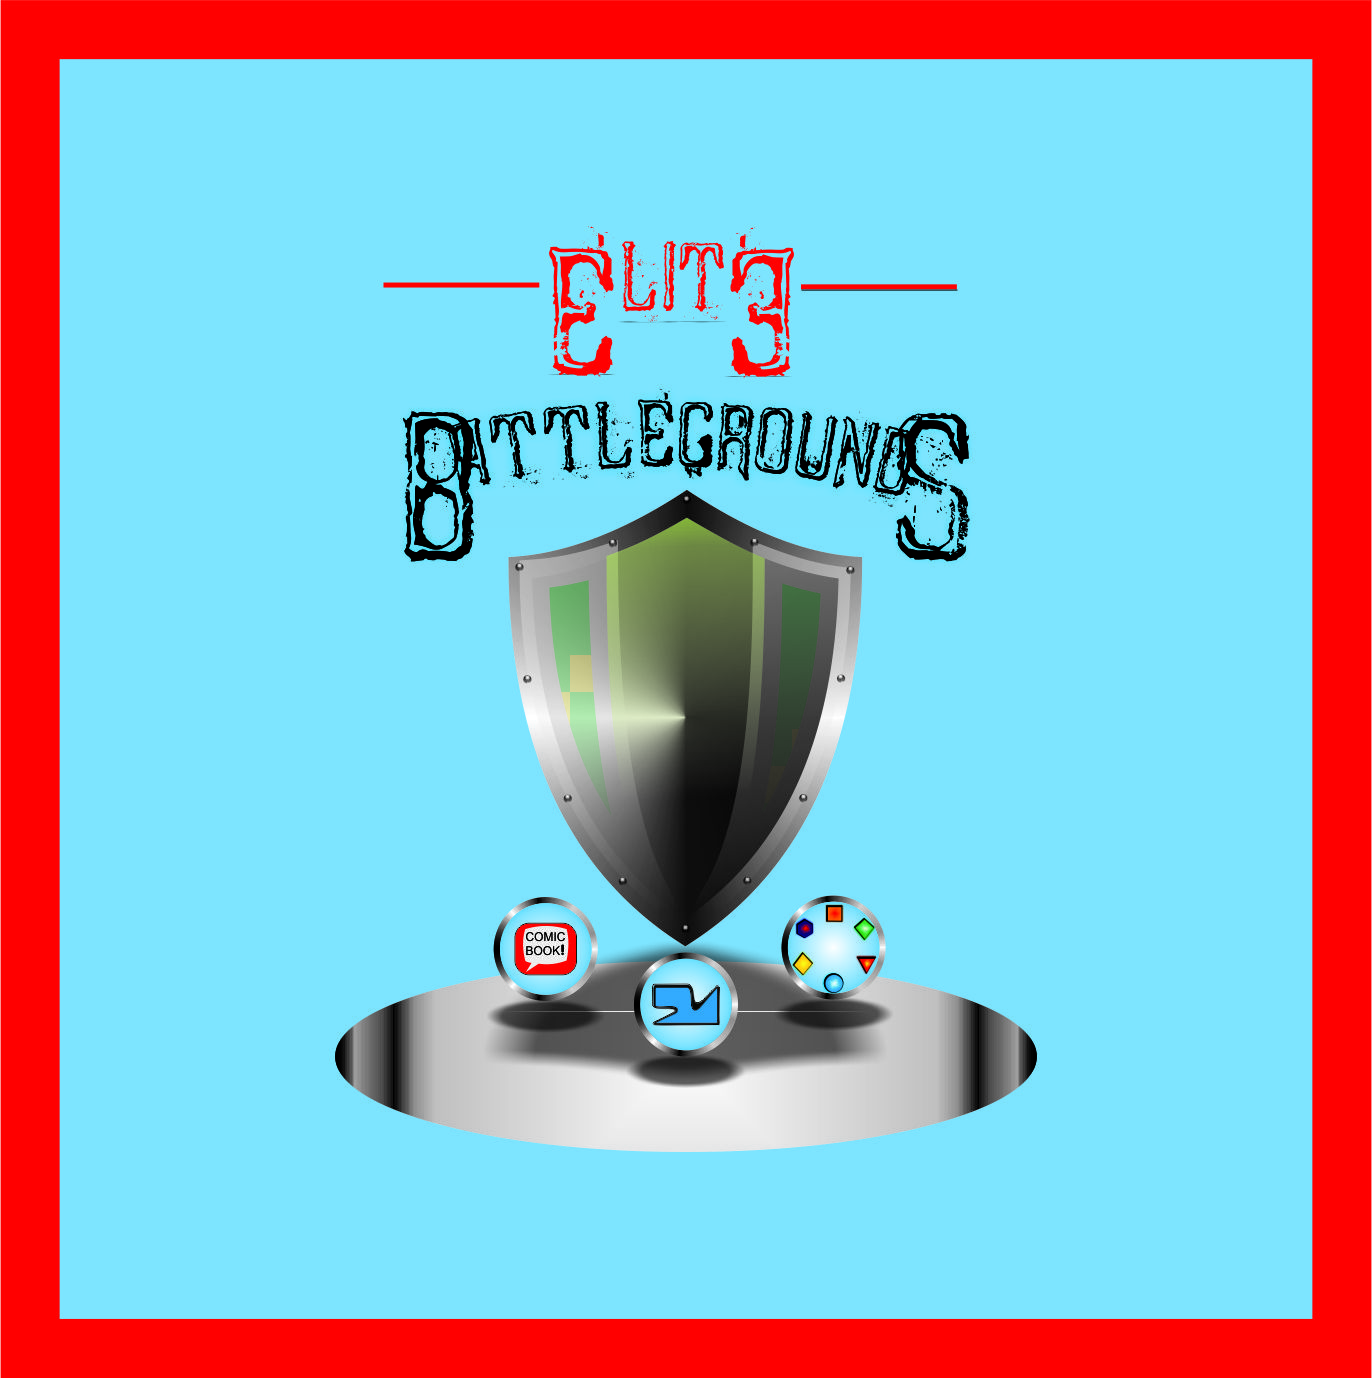 Logo Design by Teguh Hanuraga - Entry No. 88 in the Logo Design Contest Creative Logo Design for Elite Battlegrounds.